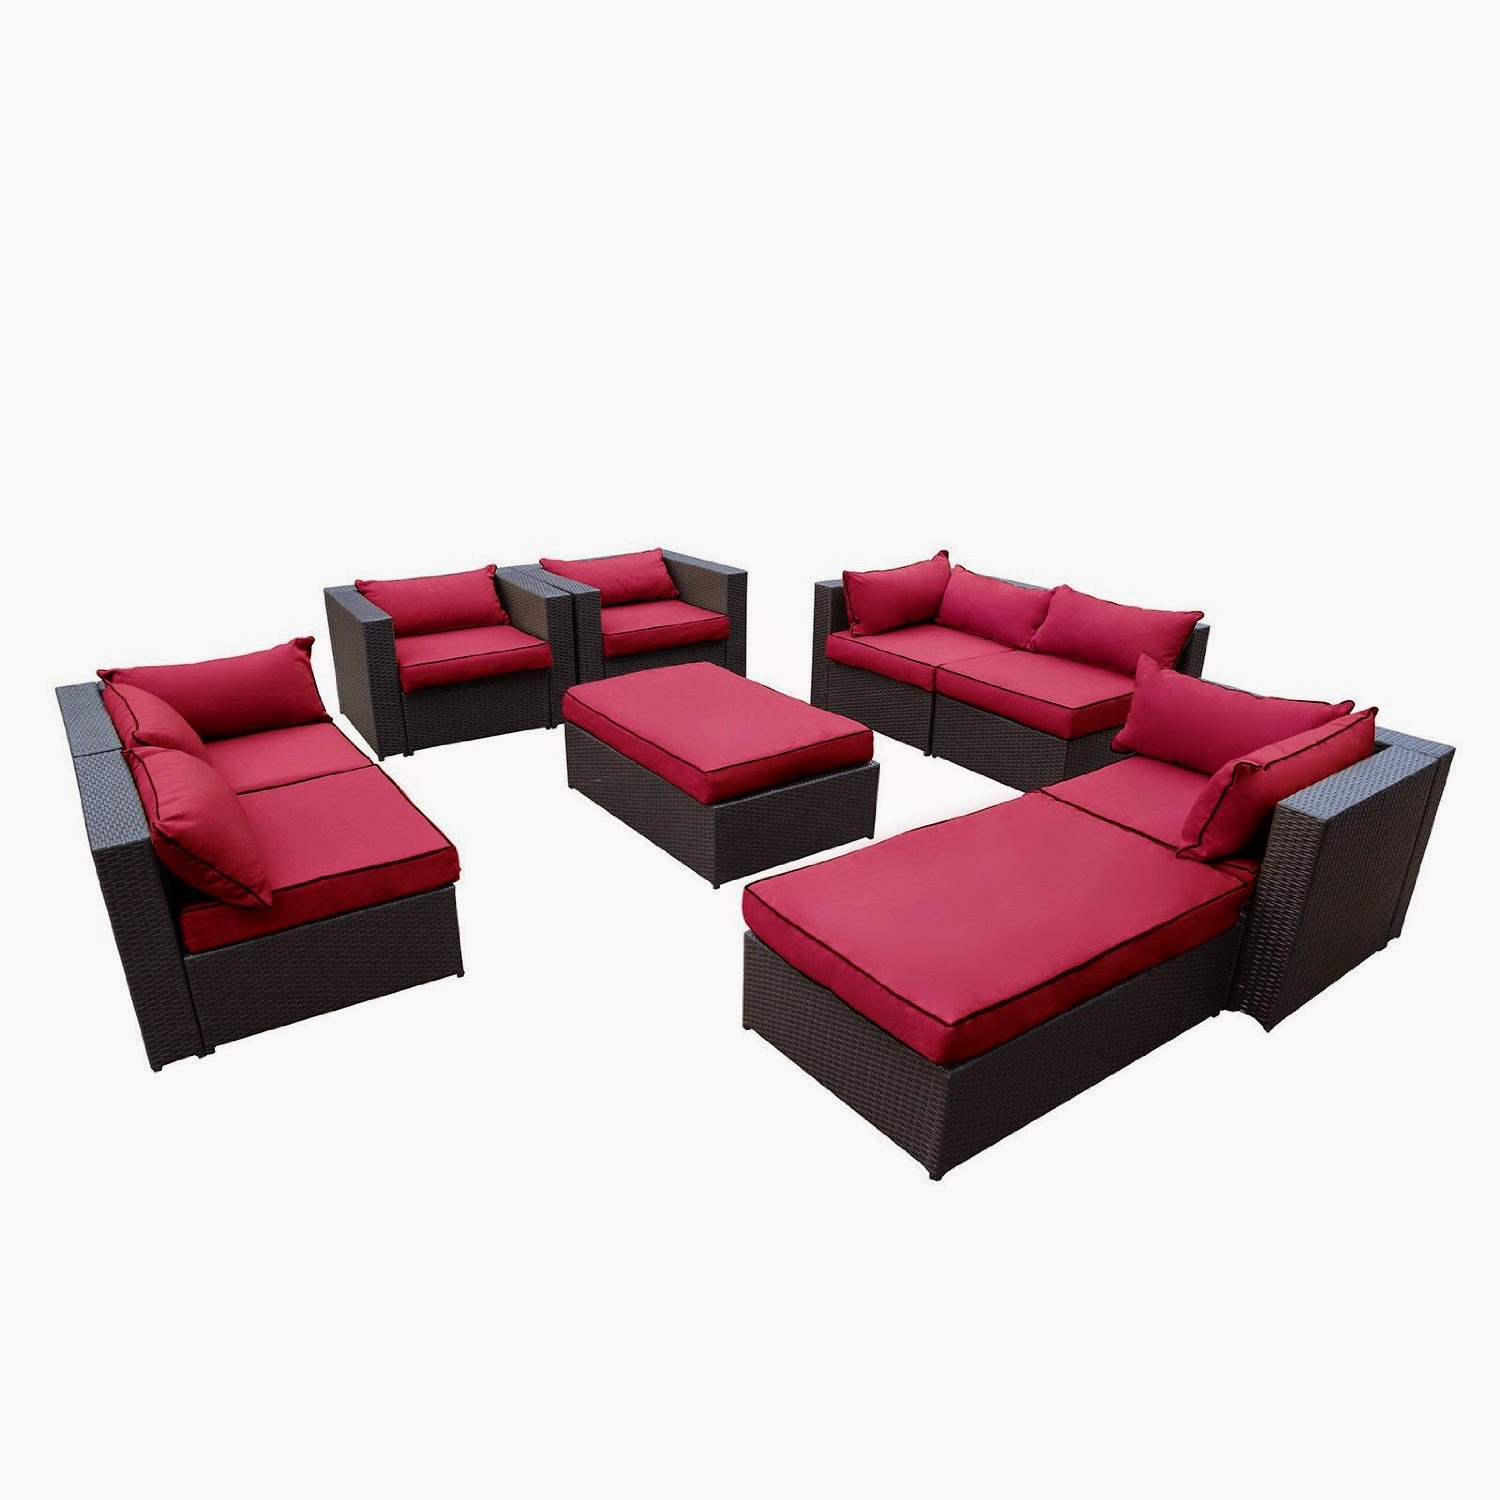 outdoor patio rattan wicker furniture sectional sofa garden furniture set red outdoor patio. Black Bedroom Furniture Sets. Home Design Ideas